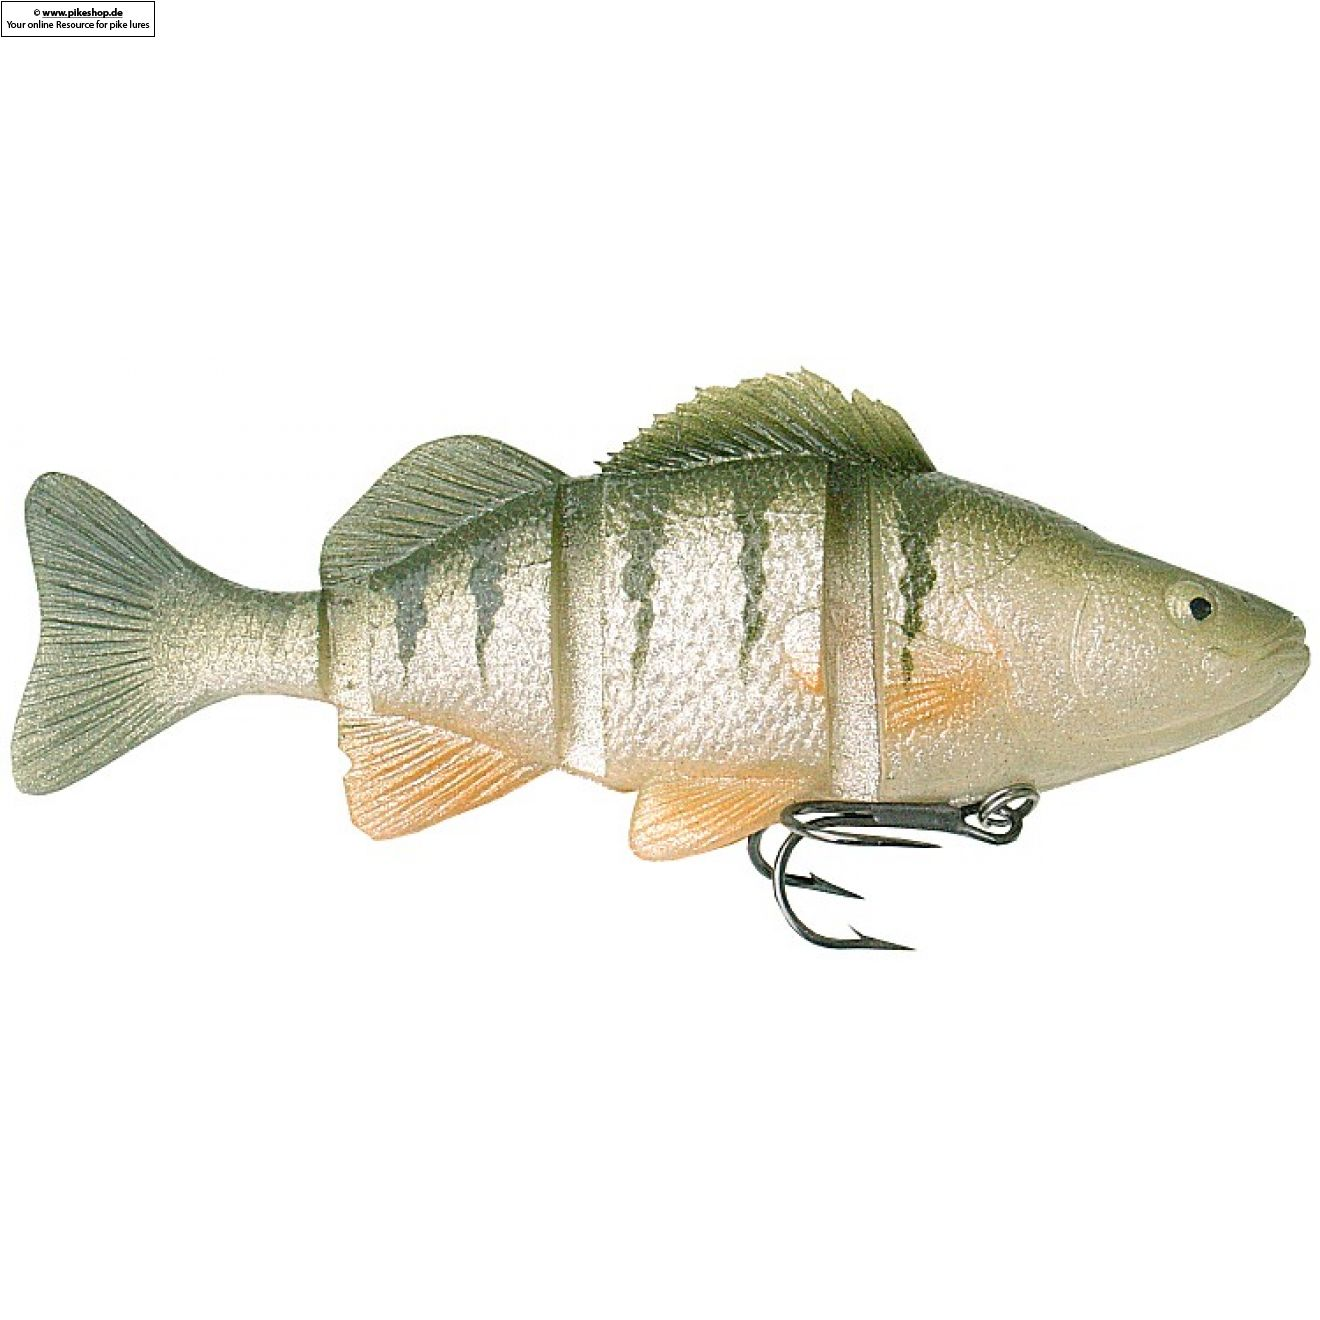 Catch22 (Slow Sinker) - 15cm (6 Zoll) - CA Yellow Perch